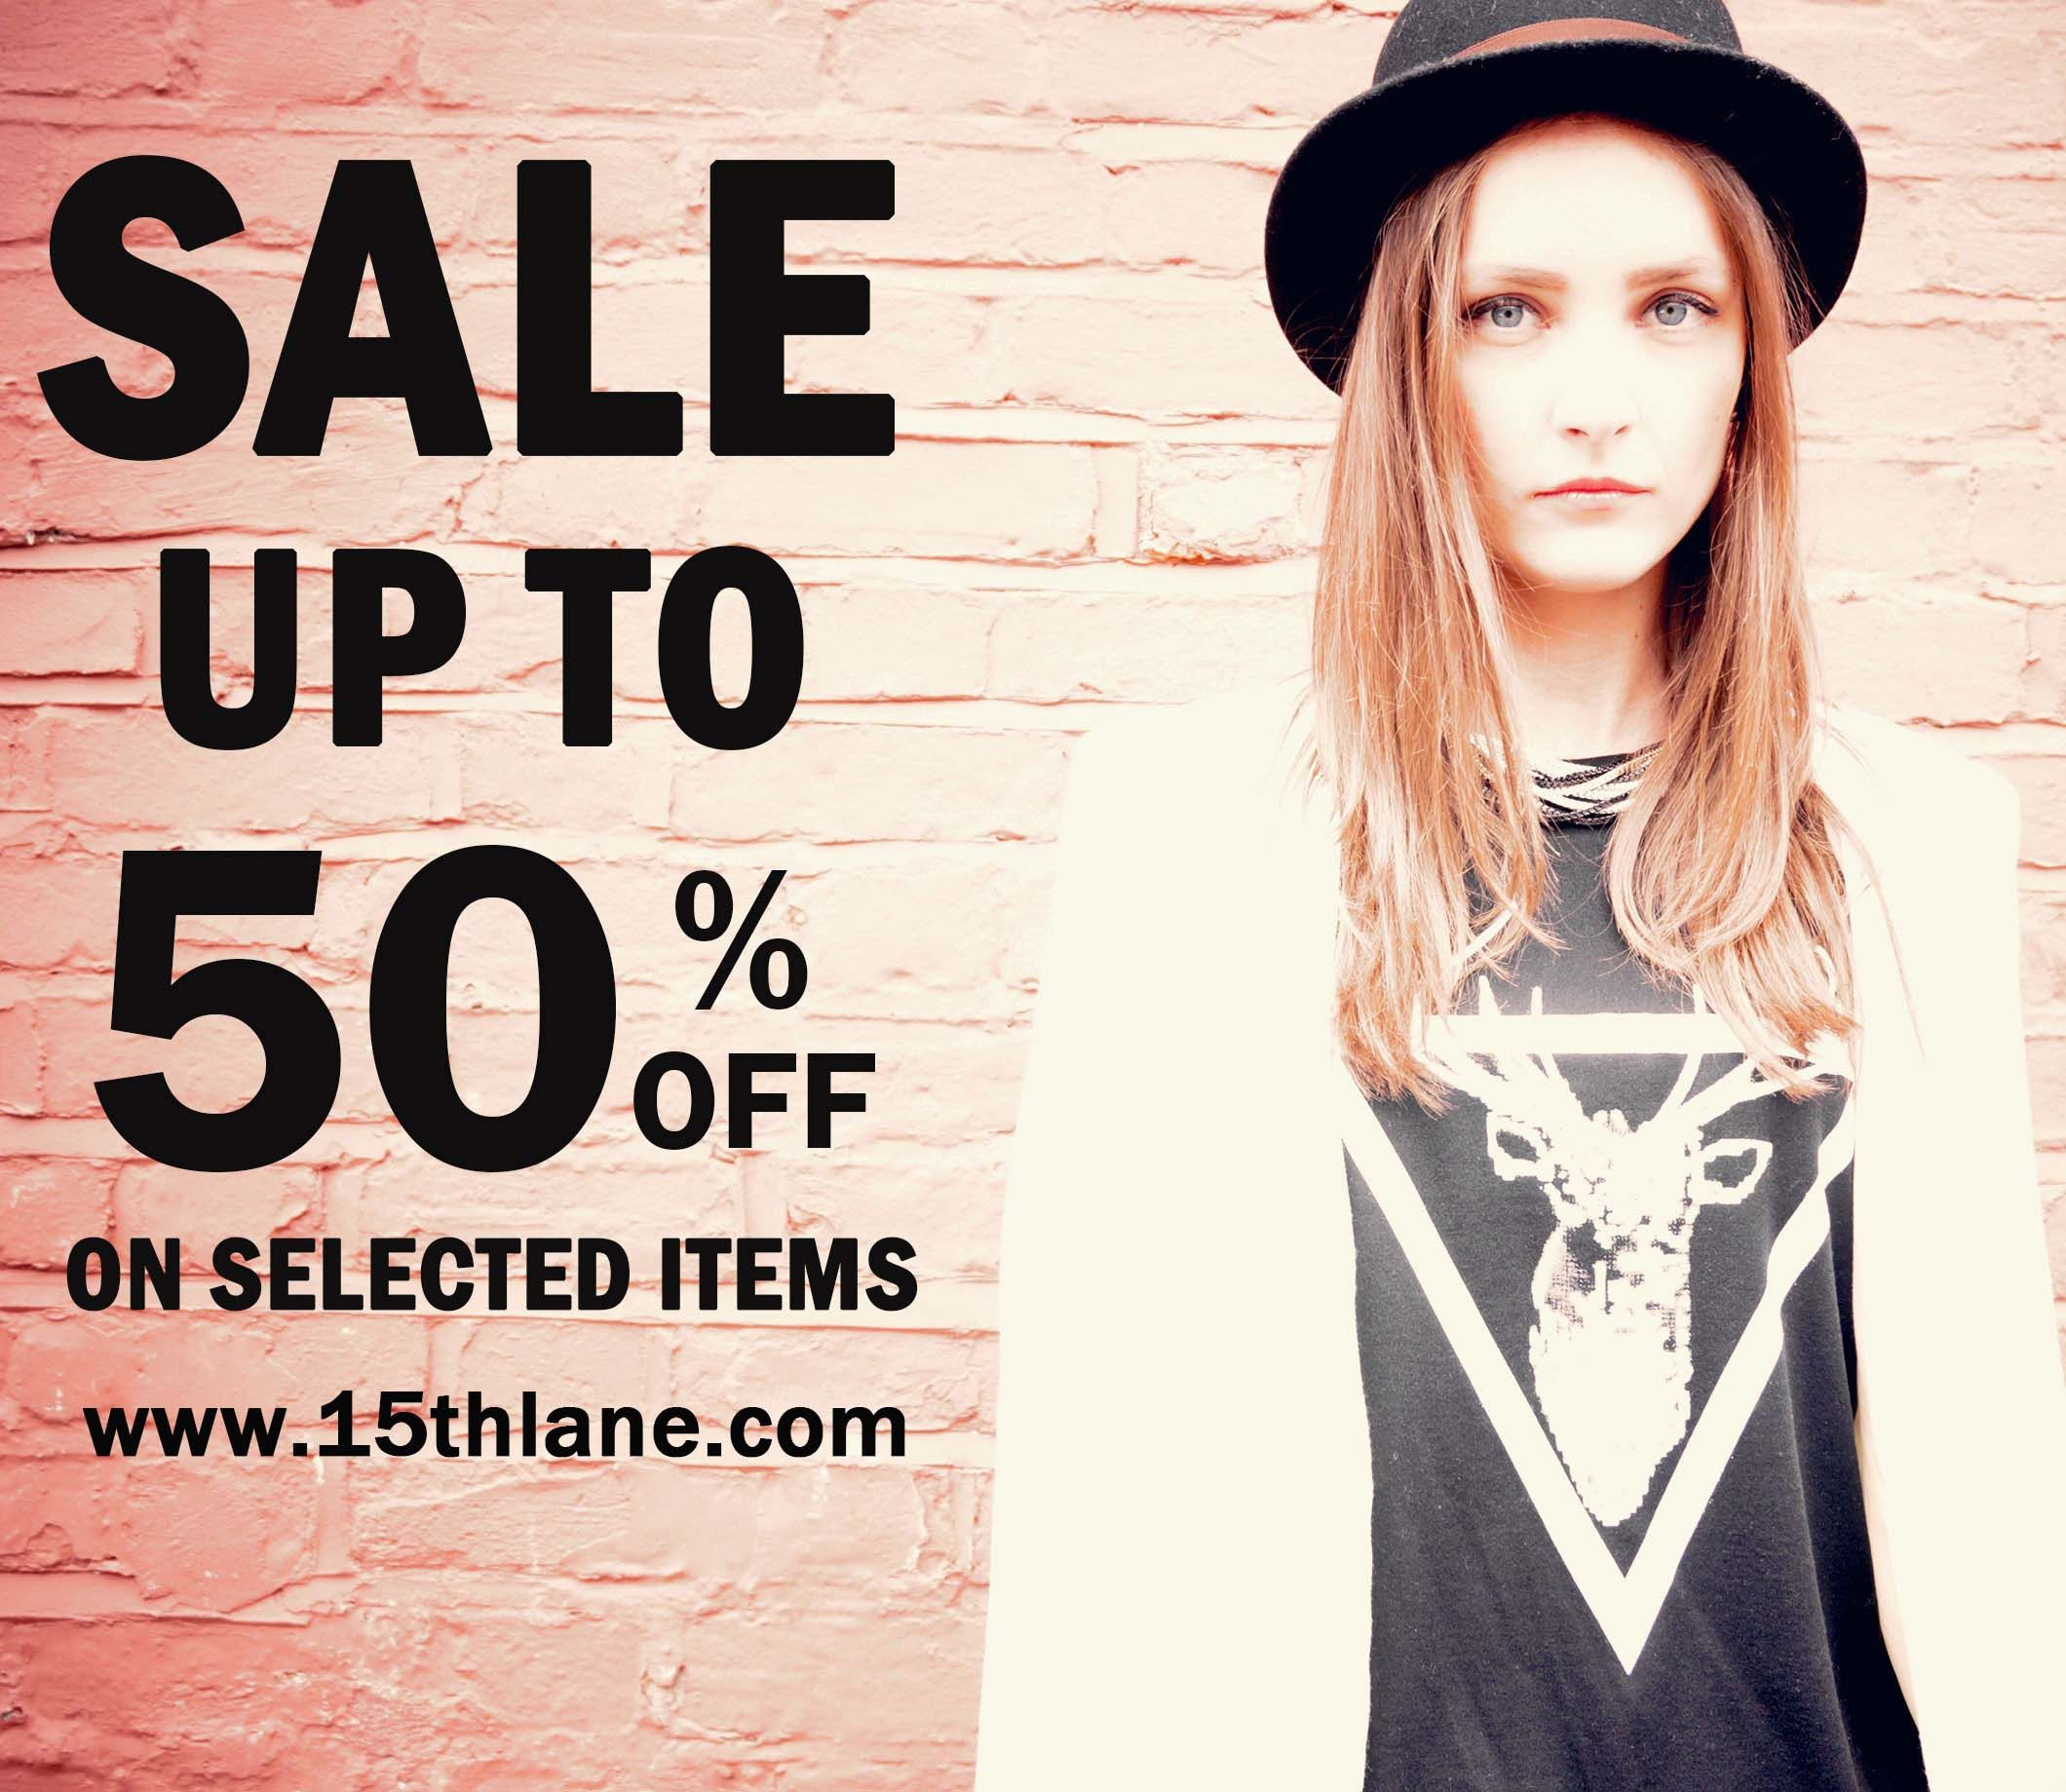 SALE IS NOW ON AT www.15thlane.com